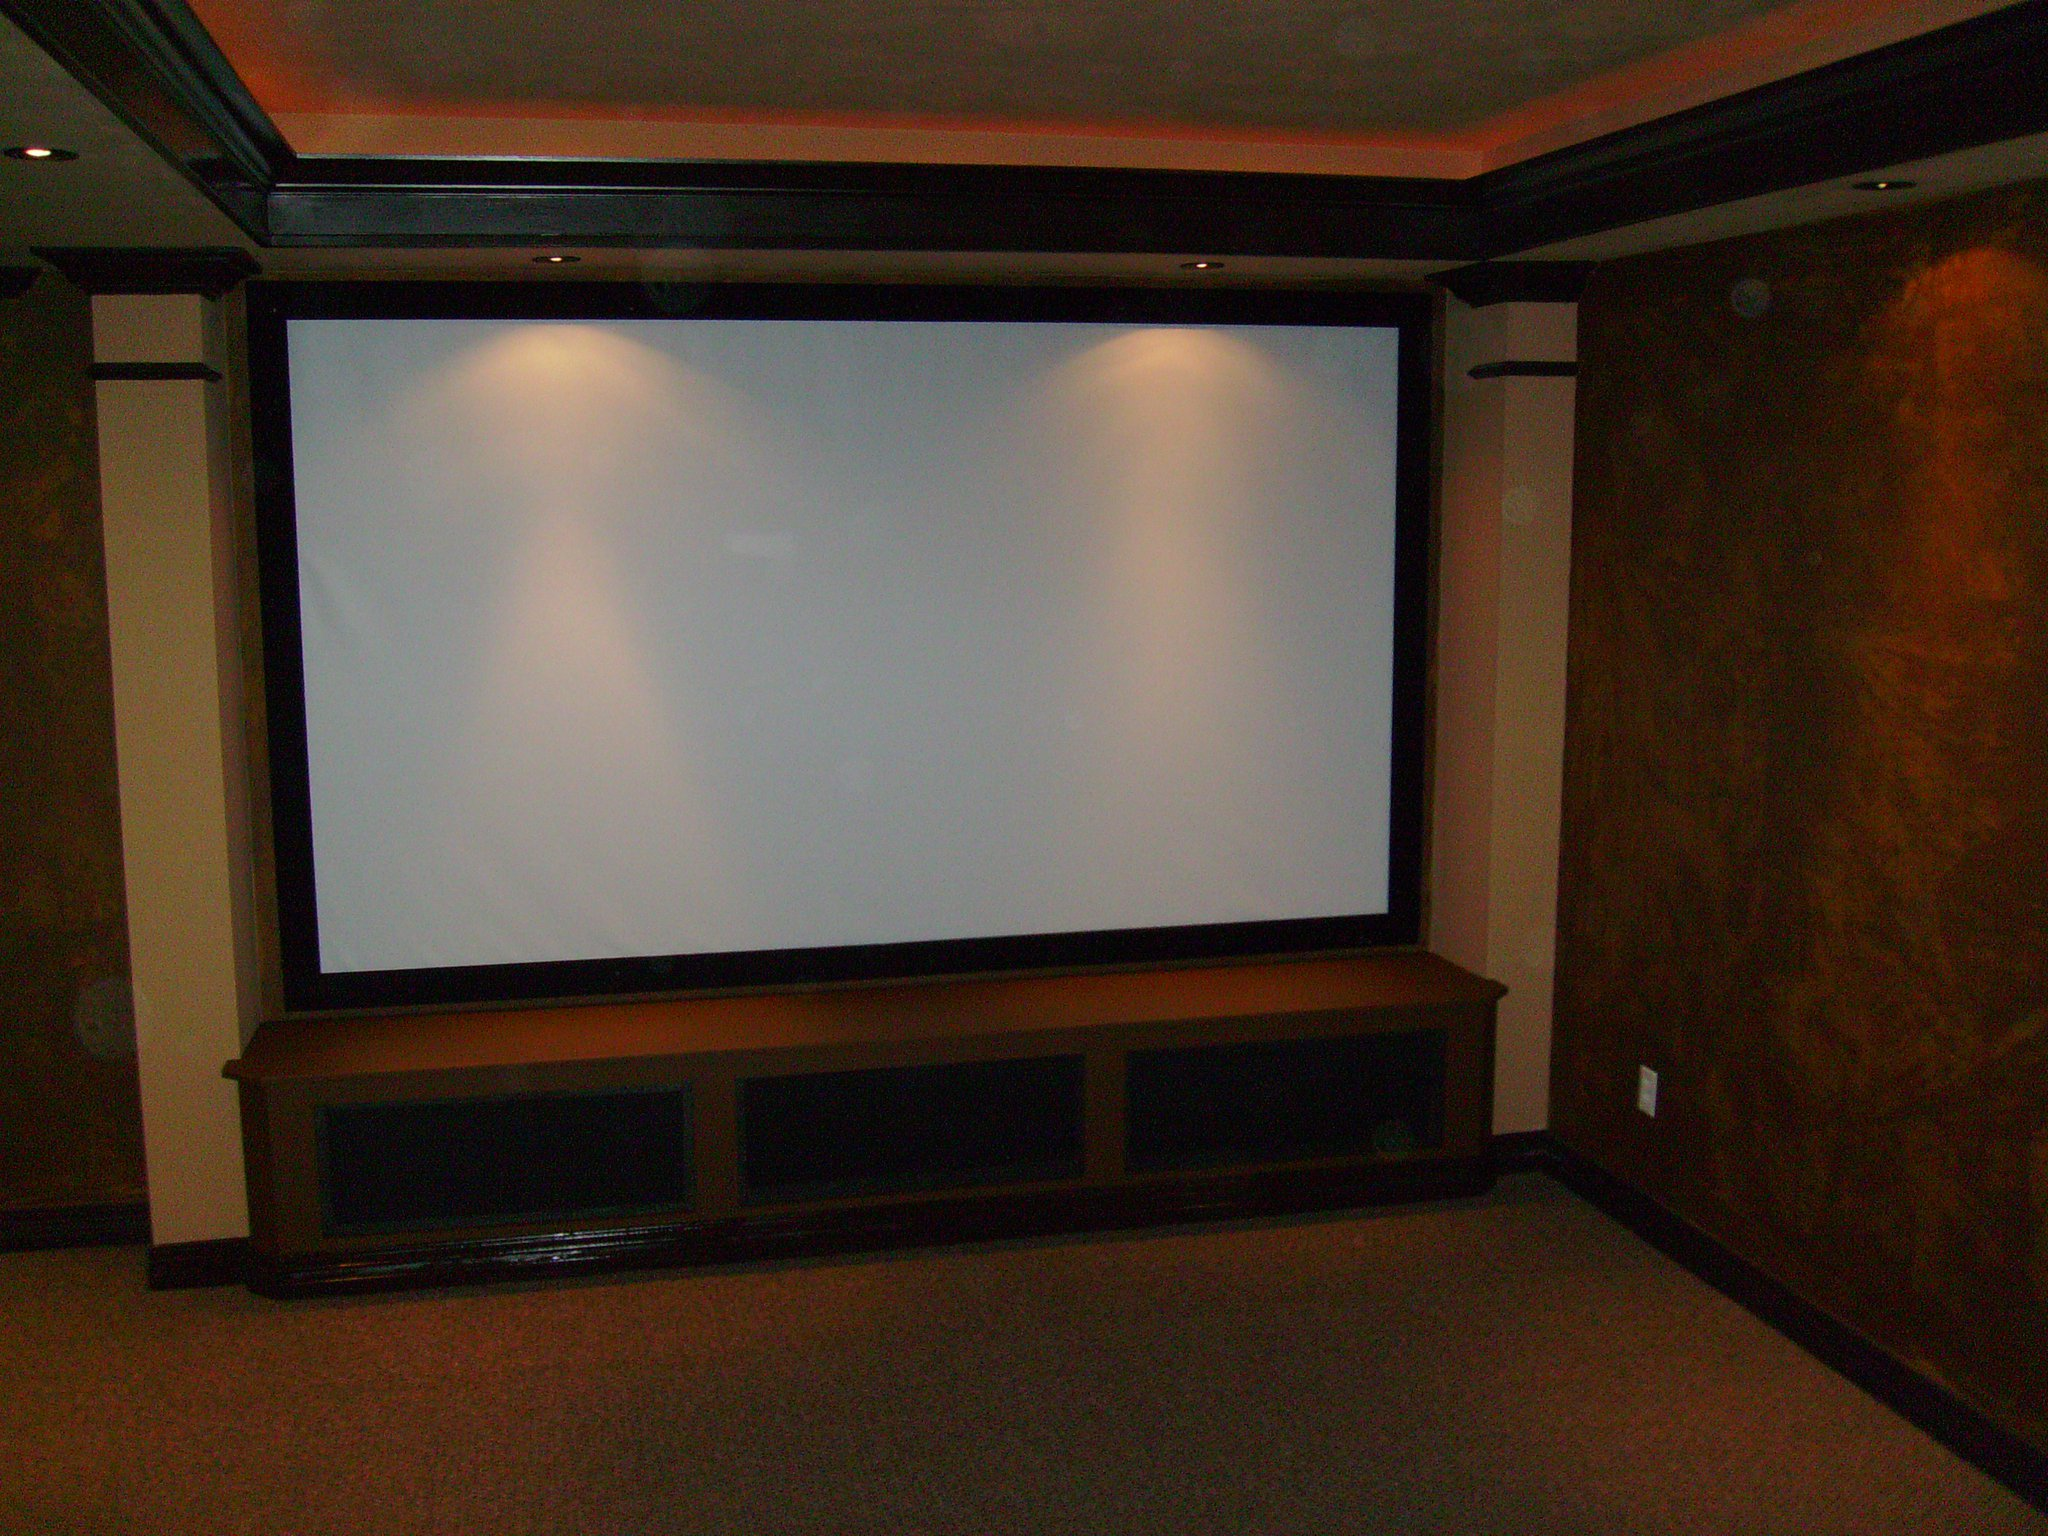 Media rooms with big screen tv interior design company for Furniture for media room